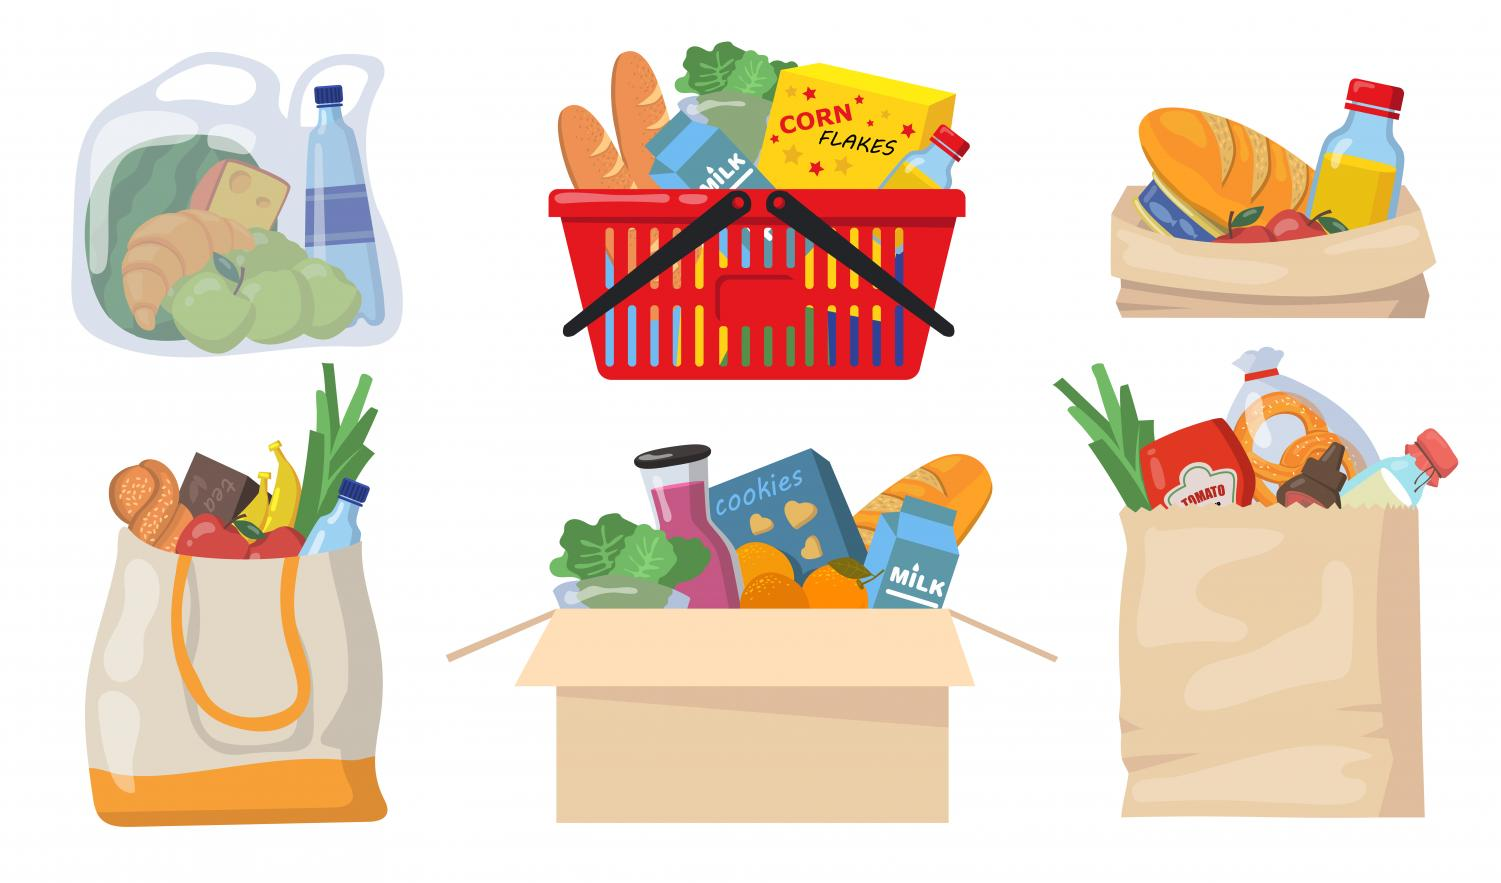 Do not be afraid to seek help. Food security is crucial to meet dietary needs for a productive, happy and healthy life.